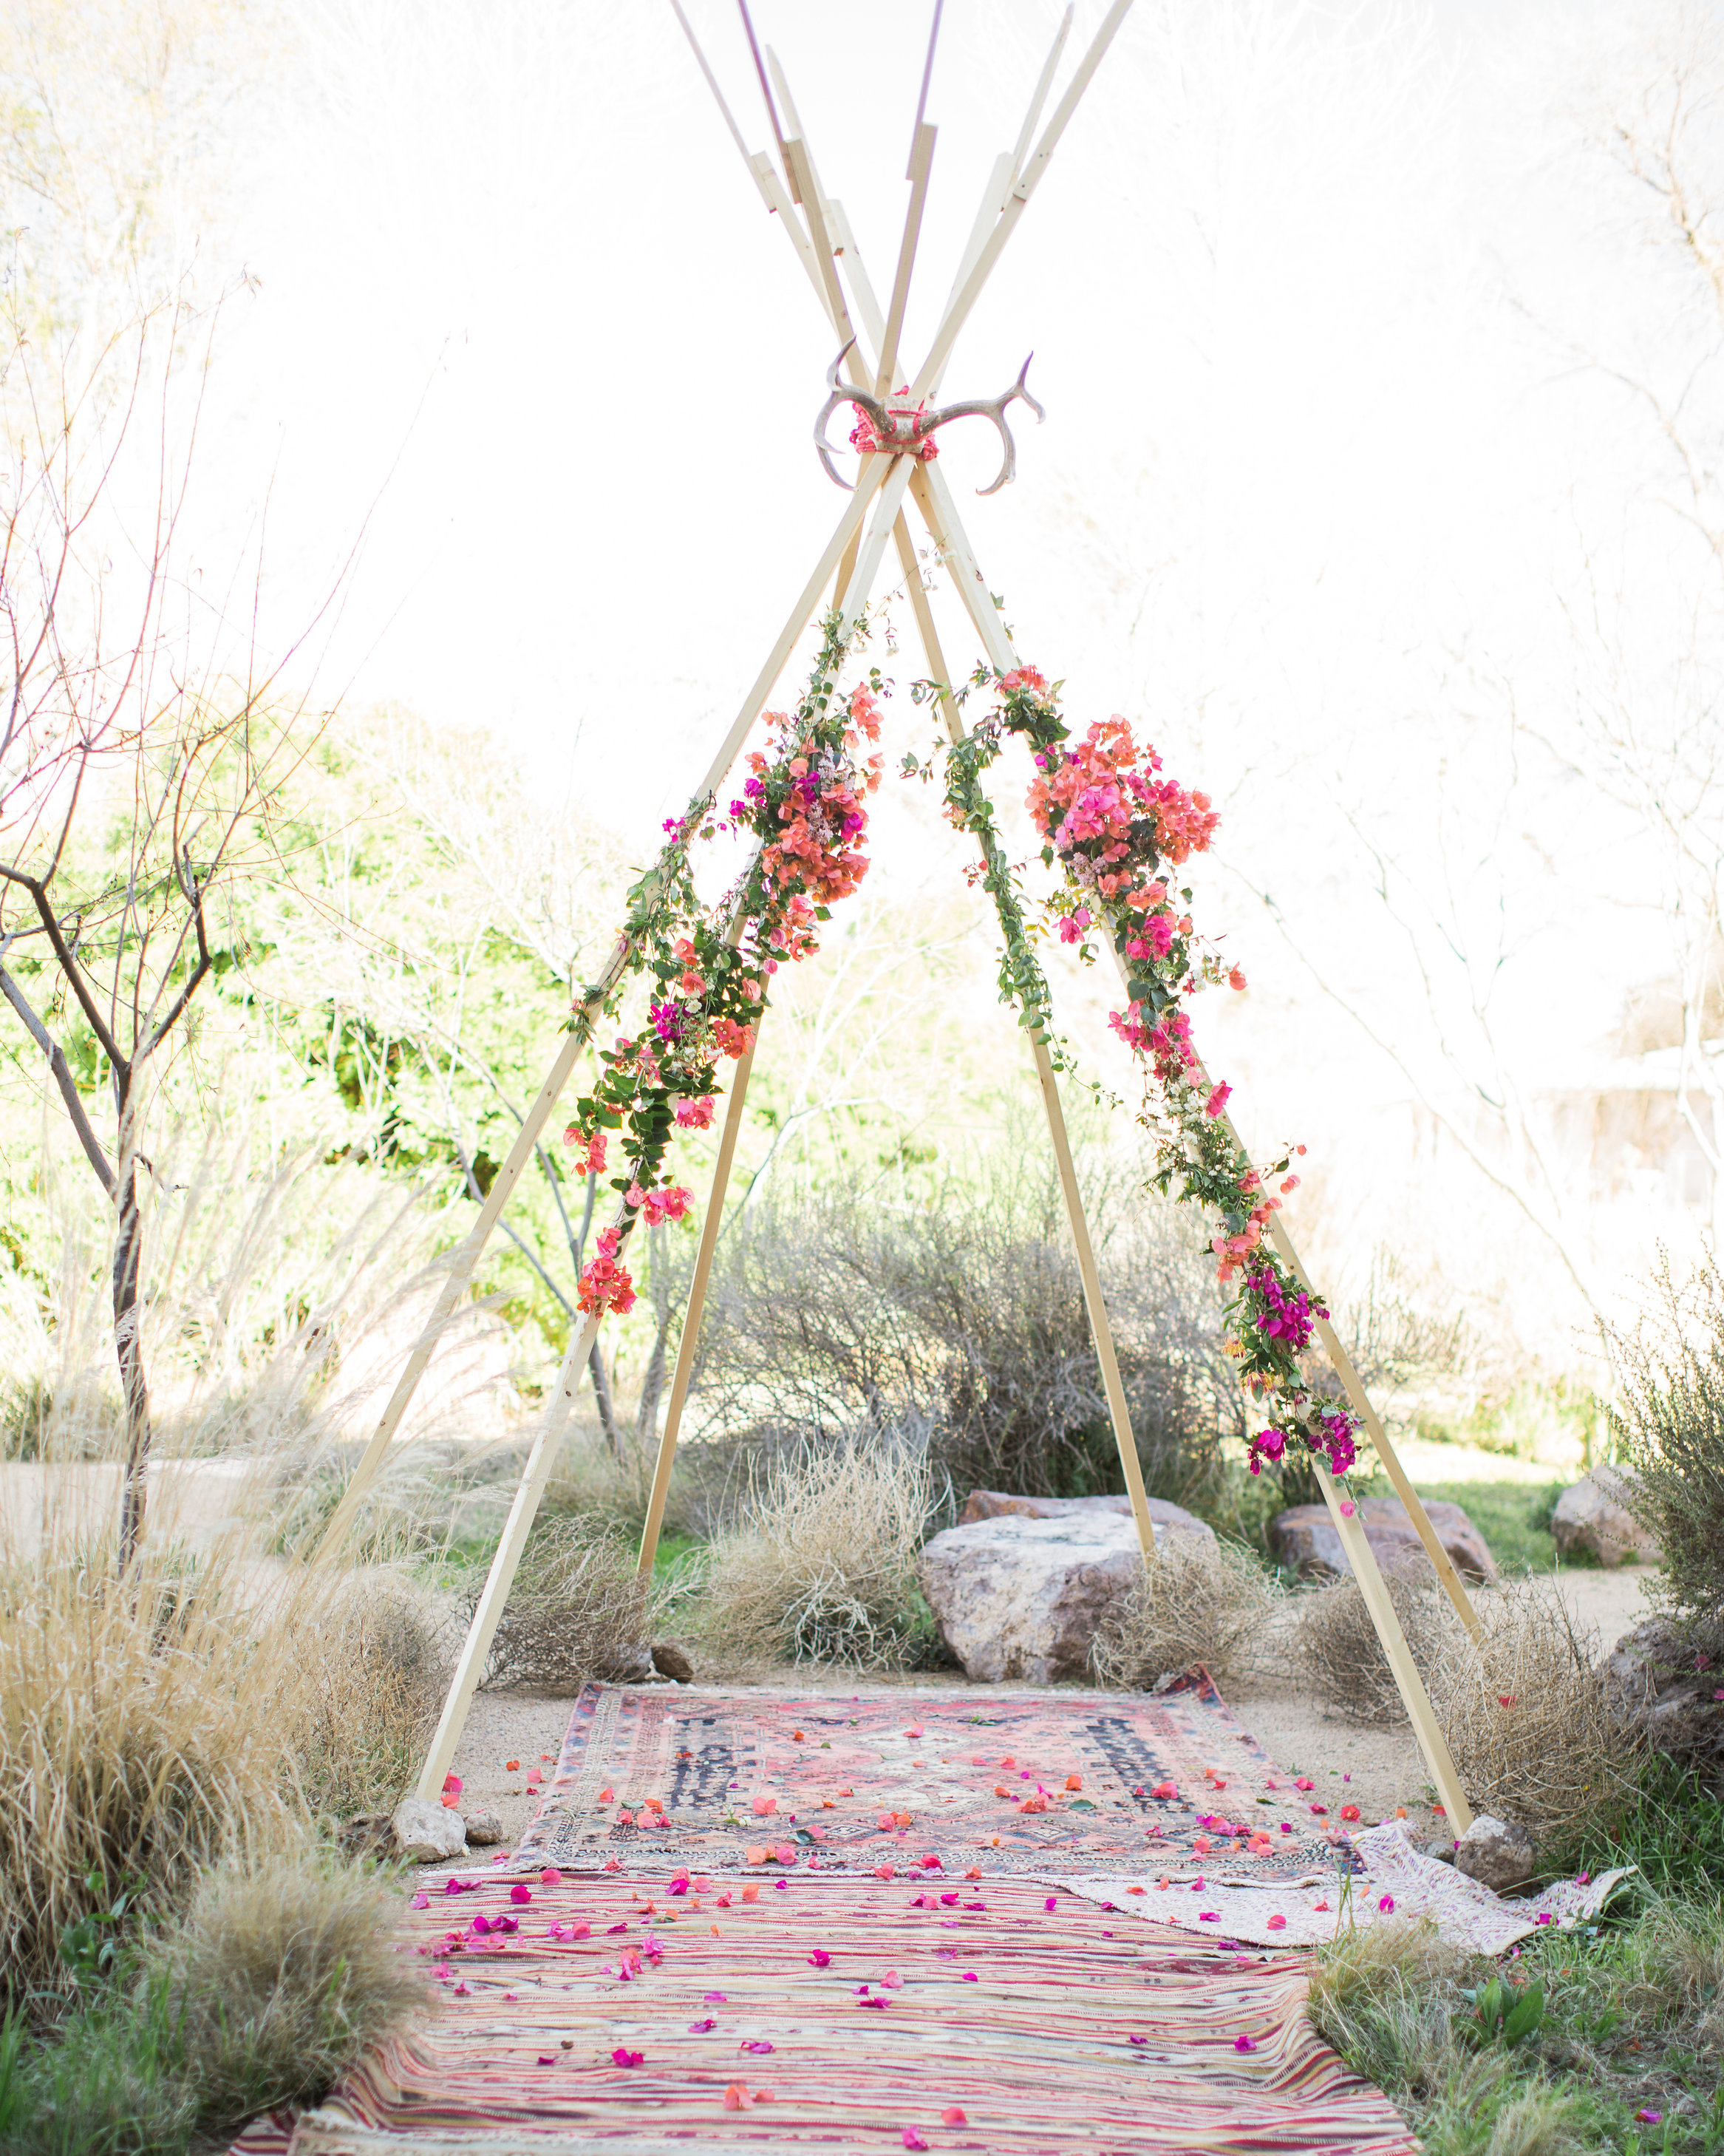 lara-chad-wedding-teepee-337-s112306-1115.jpg